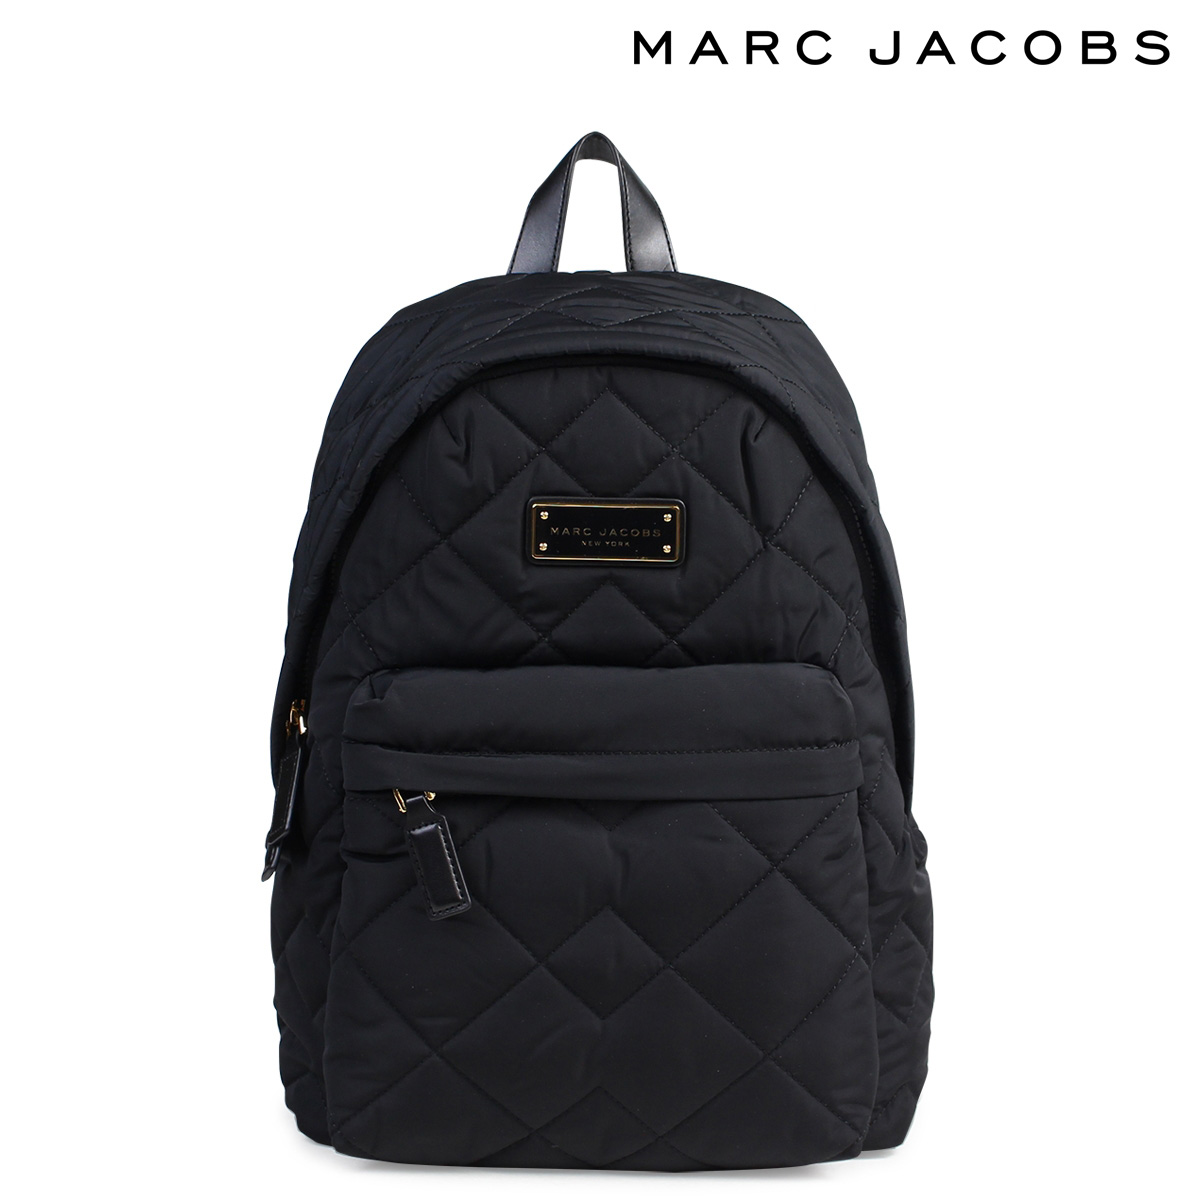 MARC JACOBS QUILTED BACKPACK マークジェイコブス バッグ リュック バックパック レディース ブラック 黒 M0011321